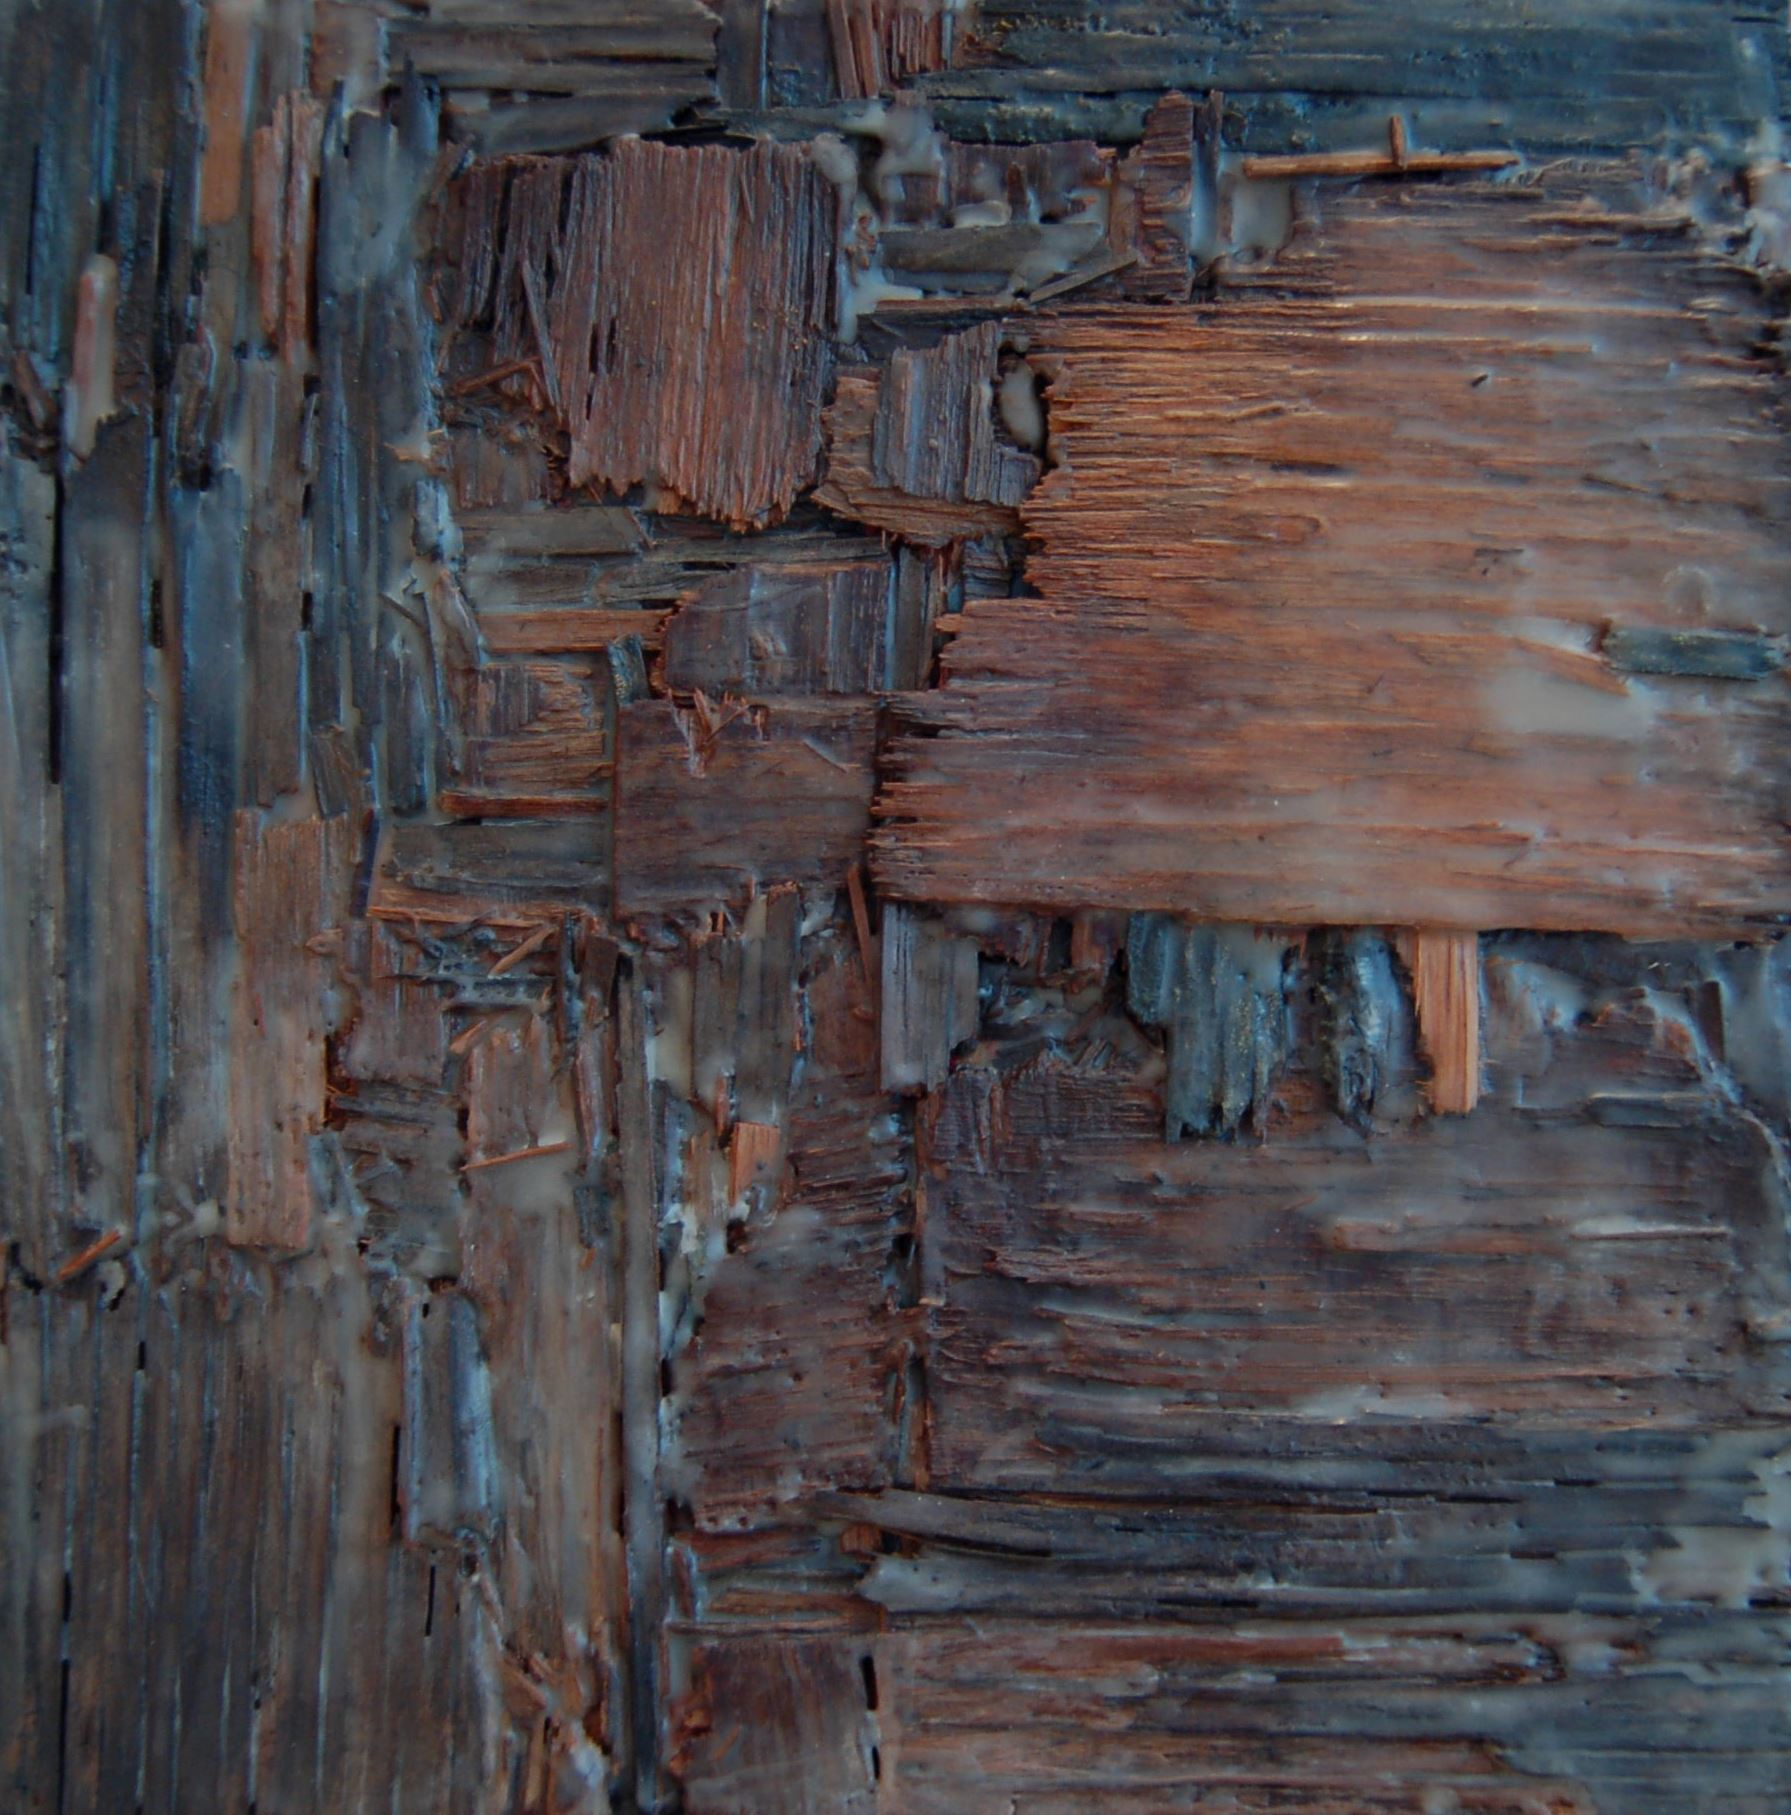 SG-047, Untitled 3, Encaustic and Wood on Canvas, 12 x 12.jpg